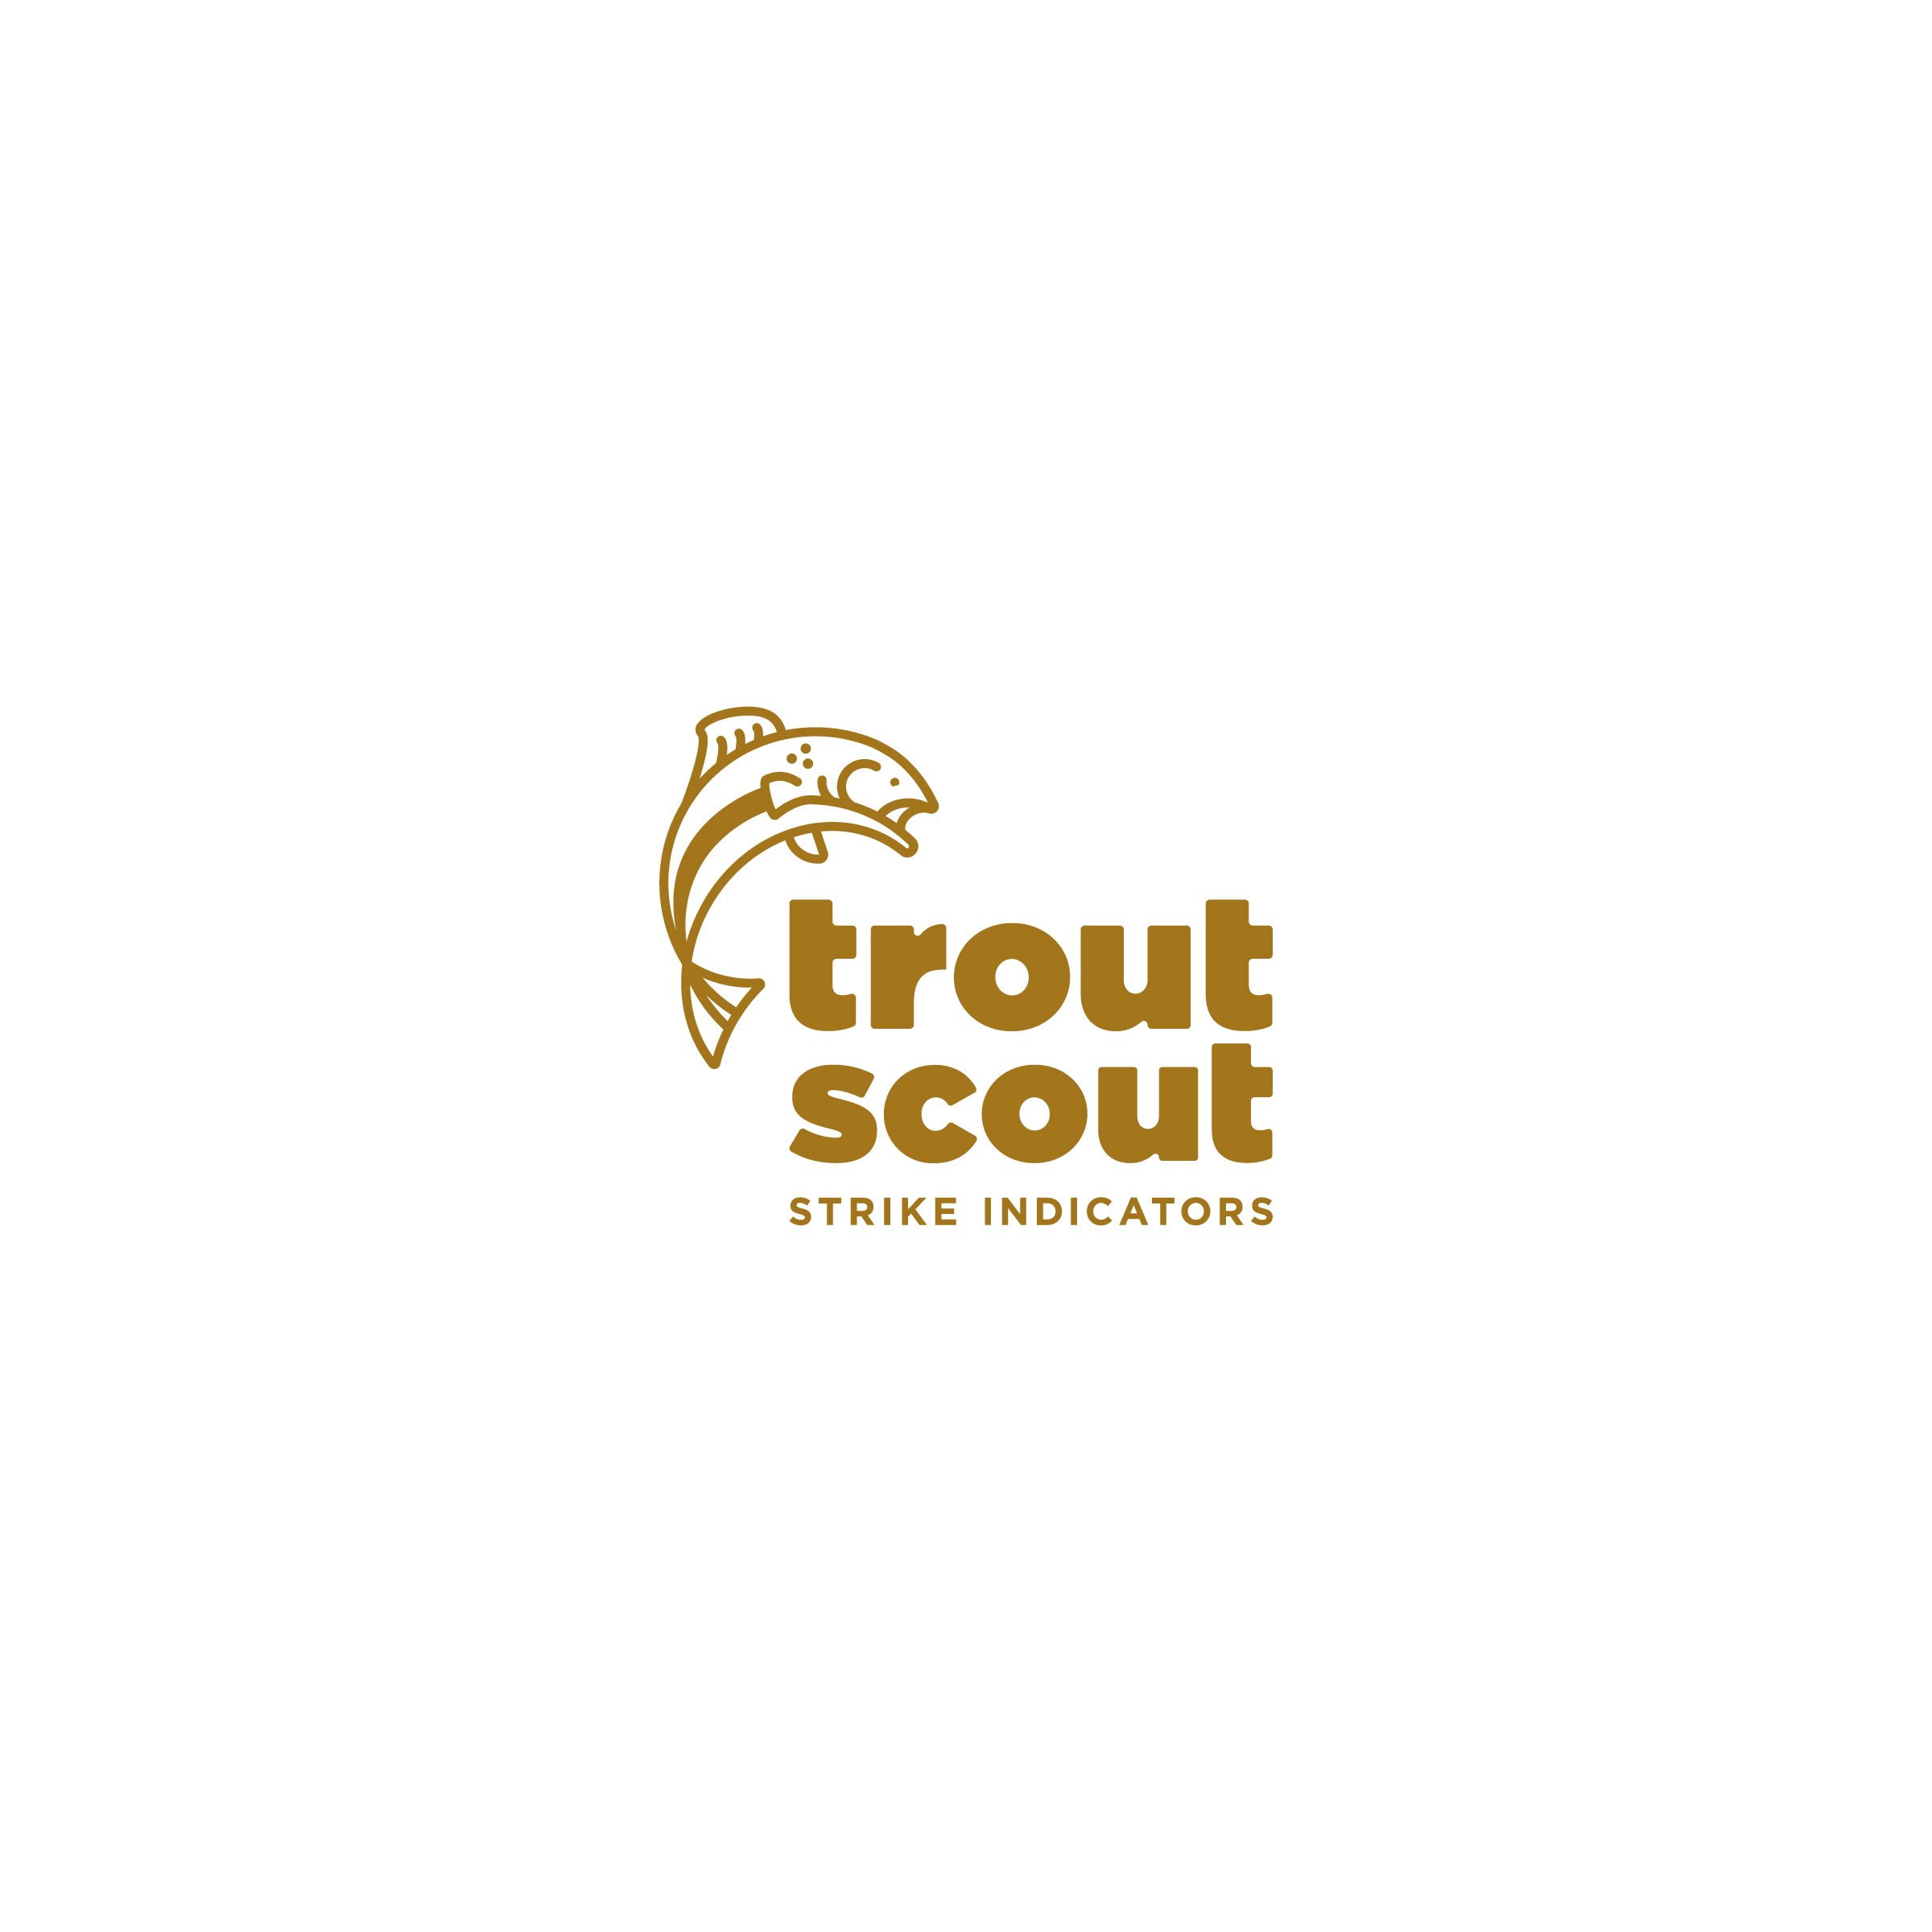 TroutScout_-LtBrown_Vrt.jpg